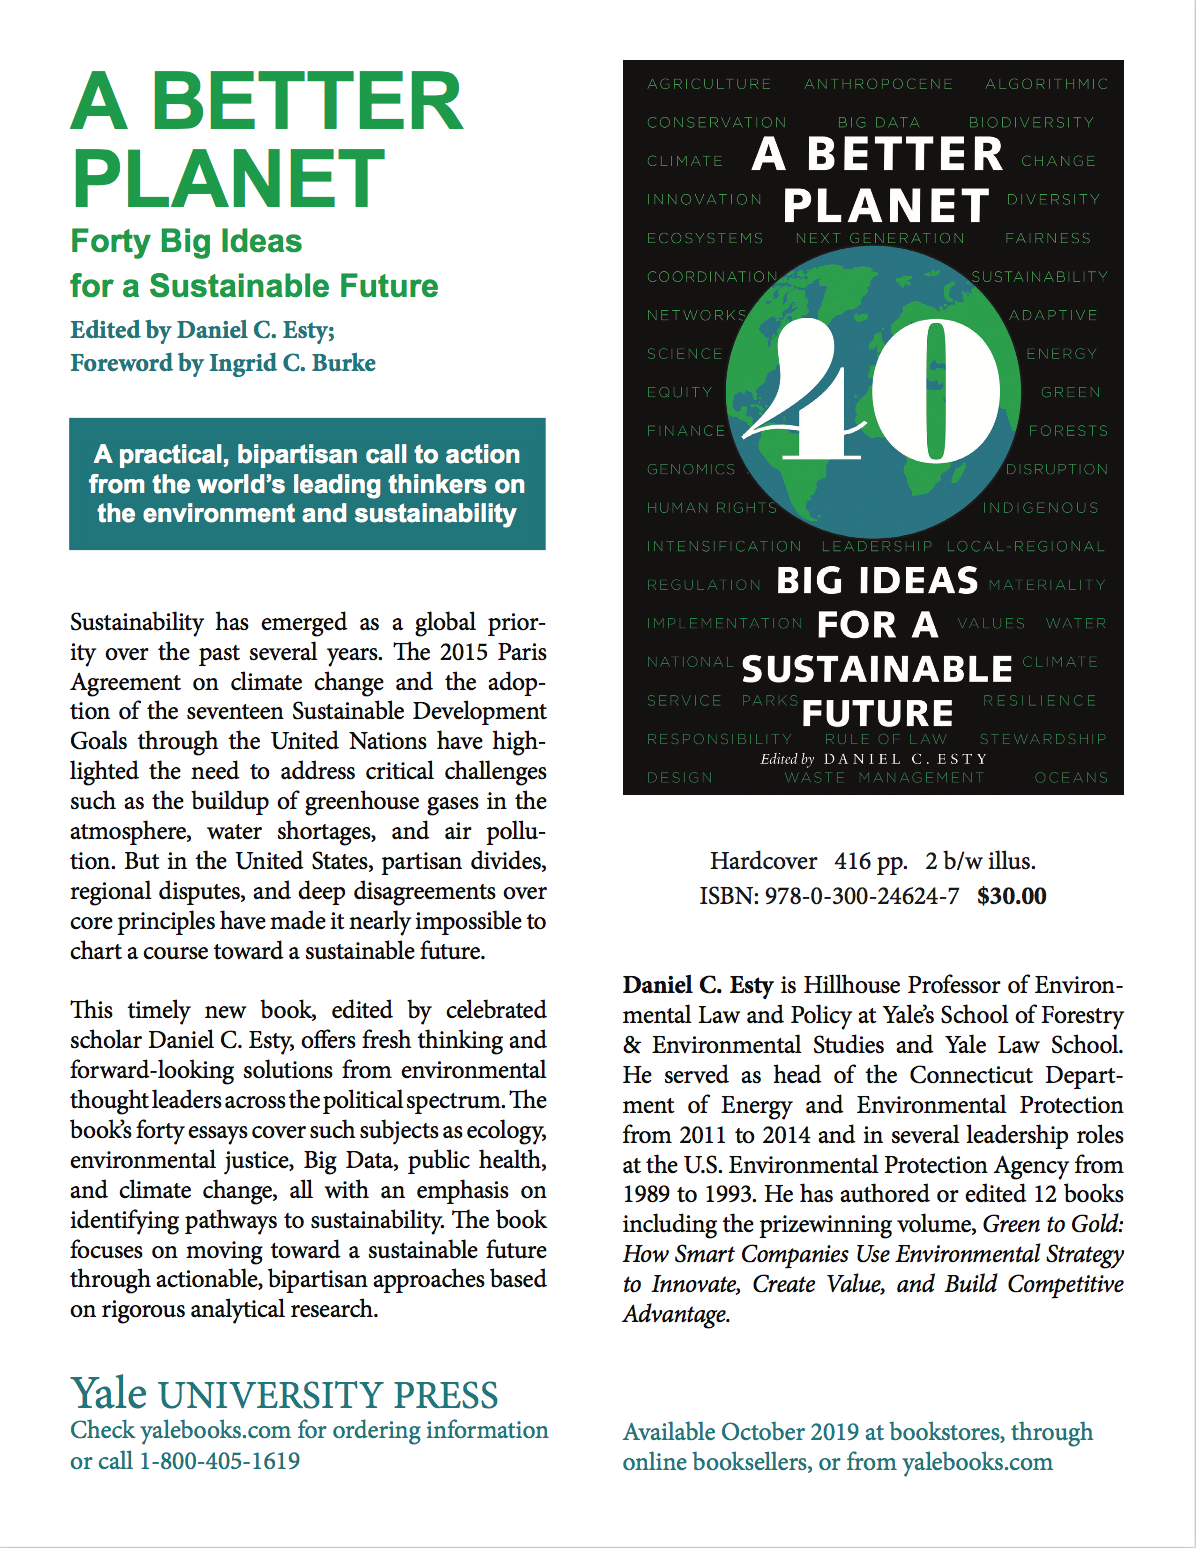 A Better Planet: Fourty Big Ideas for Sustainable Future